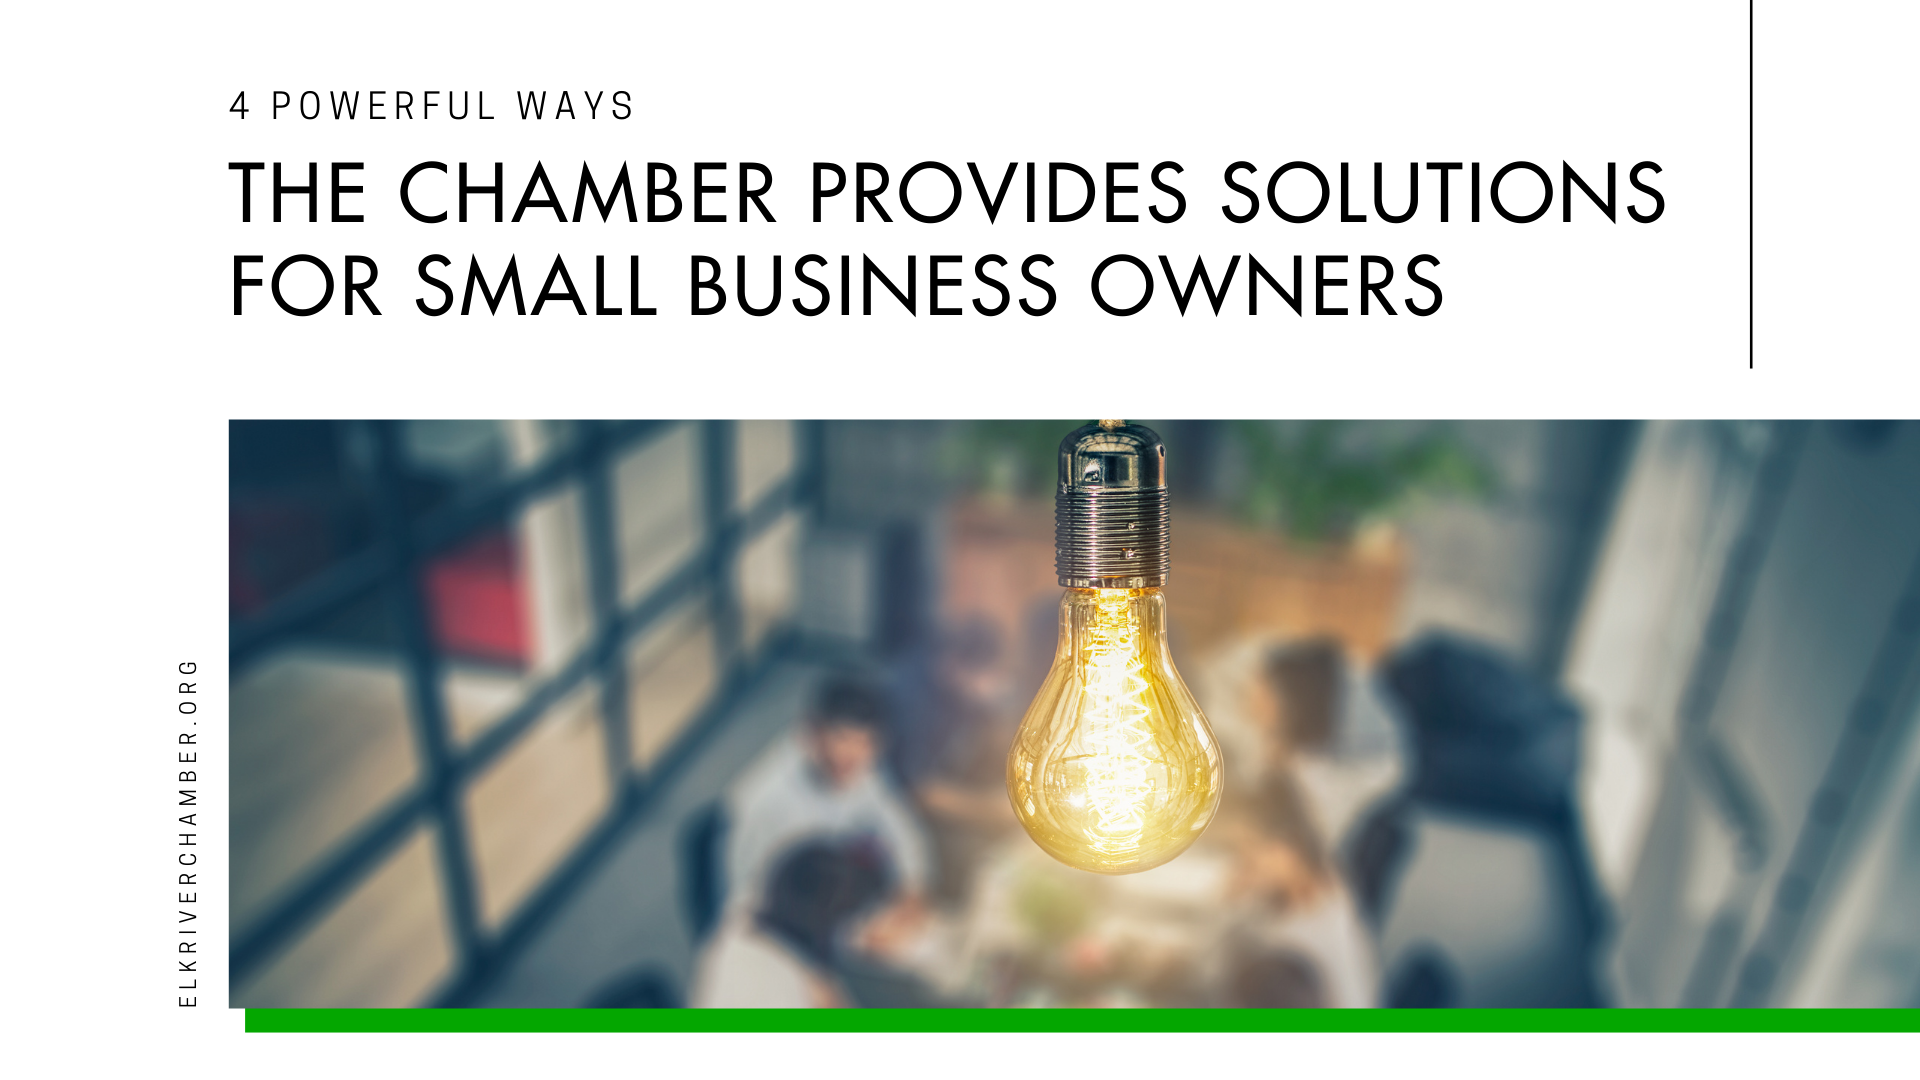 Image for 4 Powerful Ways the Chamber Provides Solutions for Small Business Owners